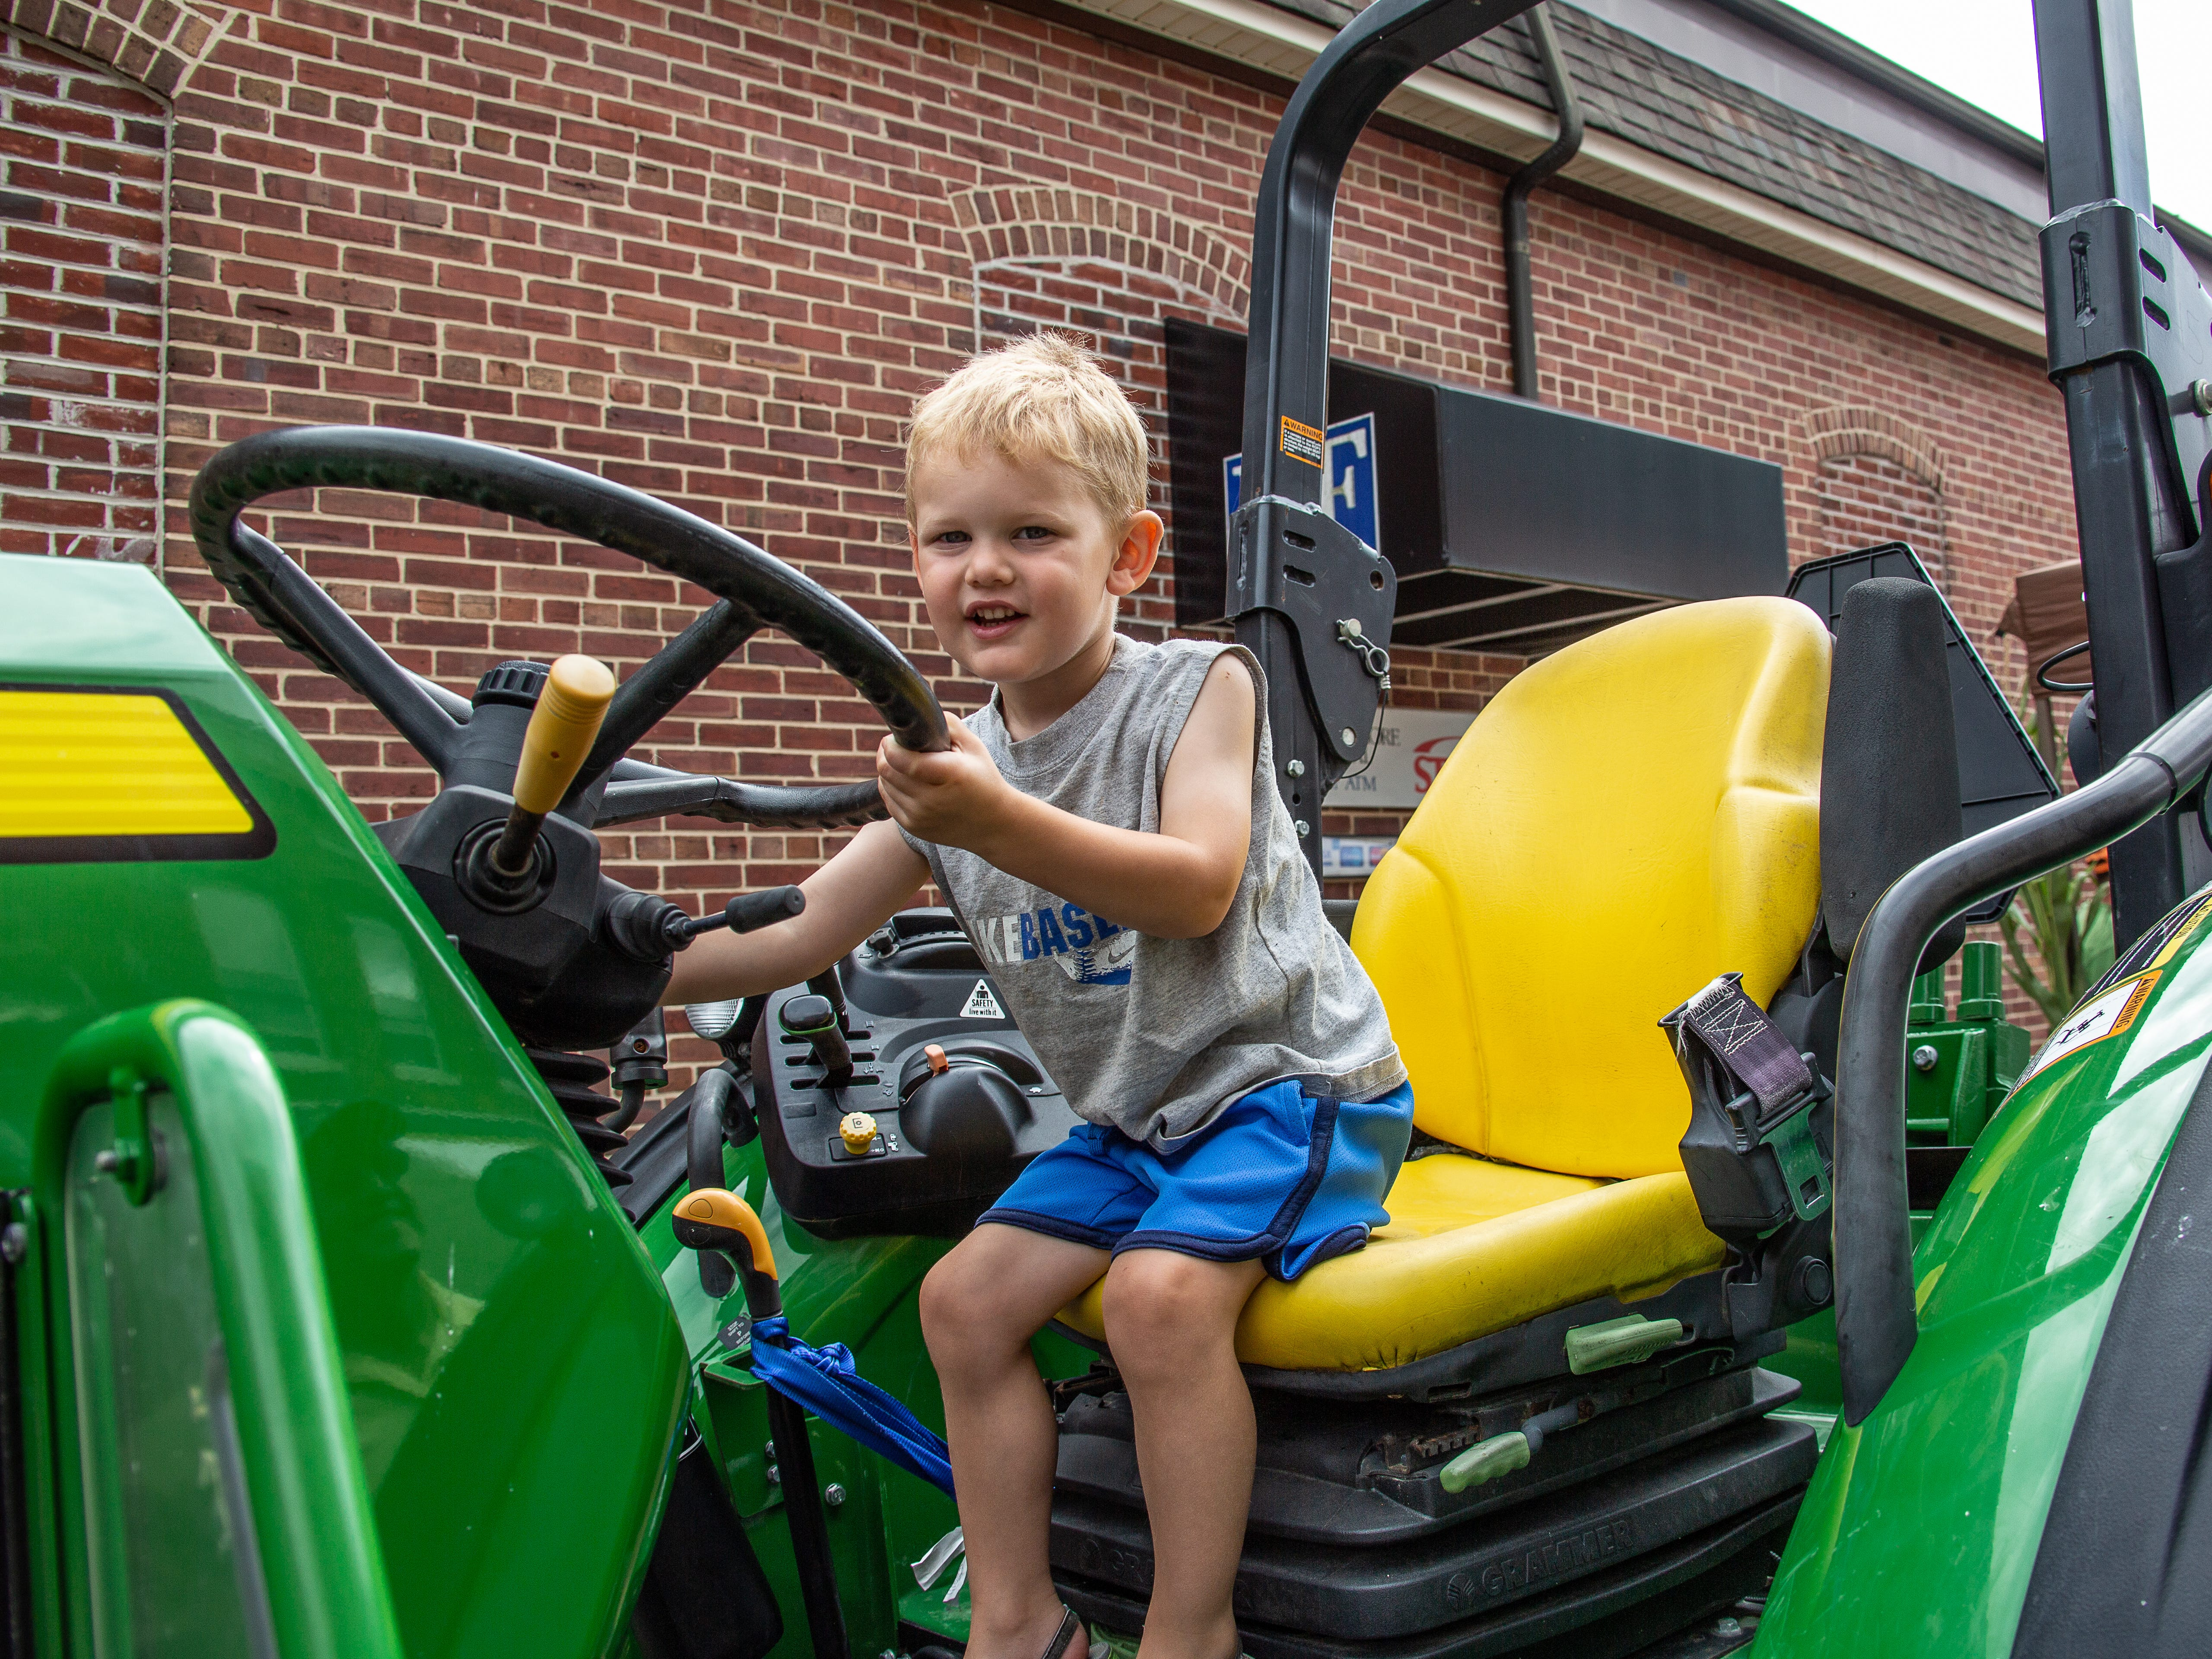 Emmitt Addis, 2, checks out a tractor at the Blessing of the Combines Saturday, Aug. 4, in Snow Hill.